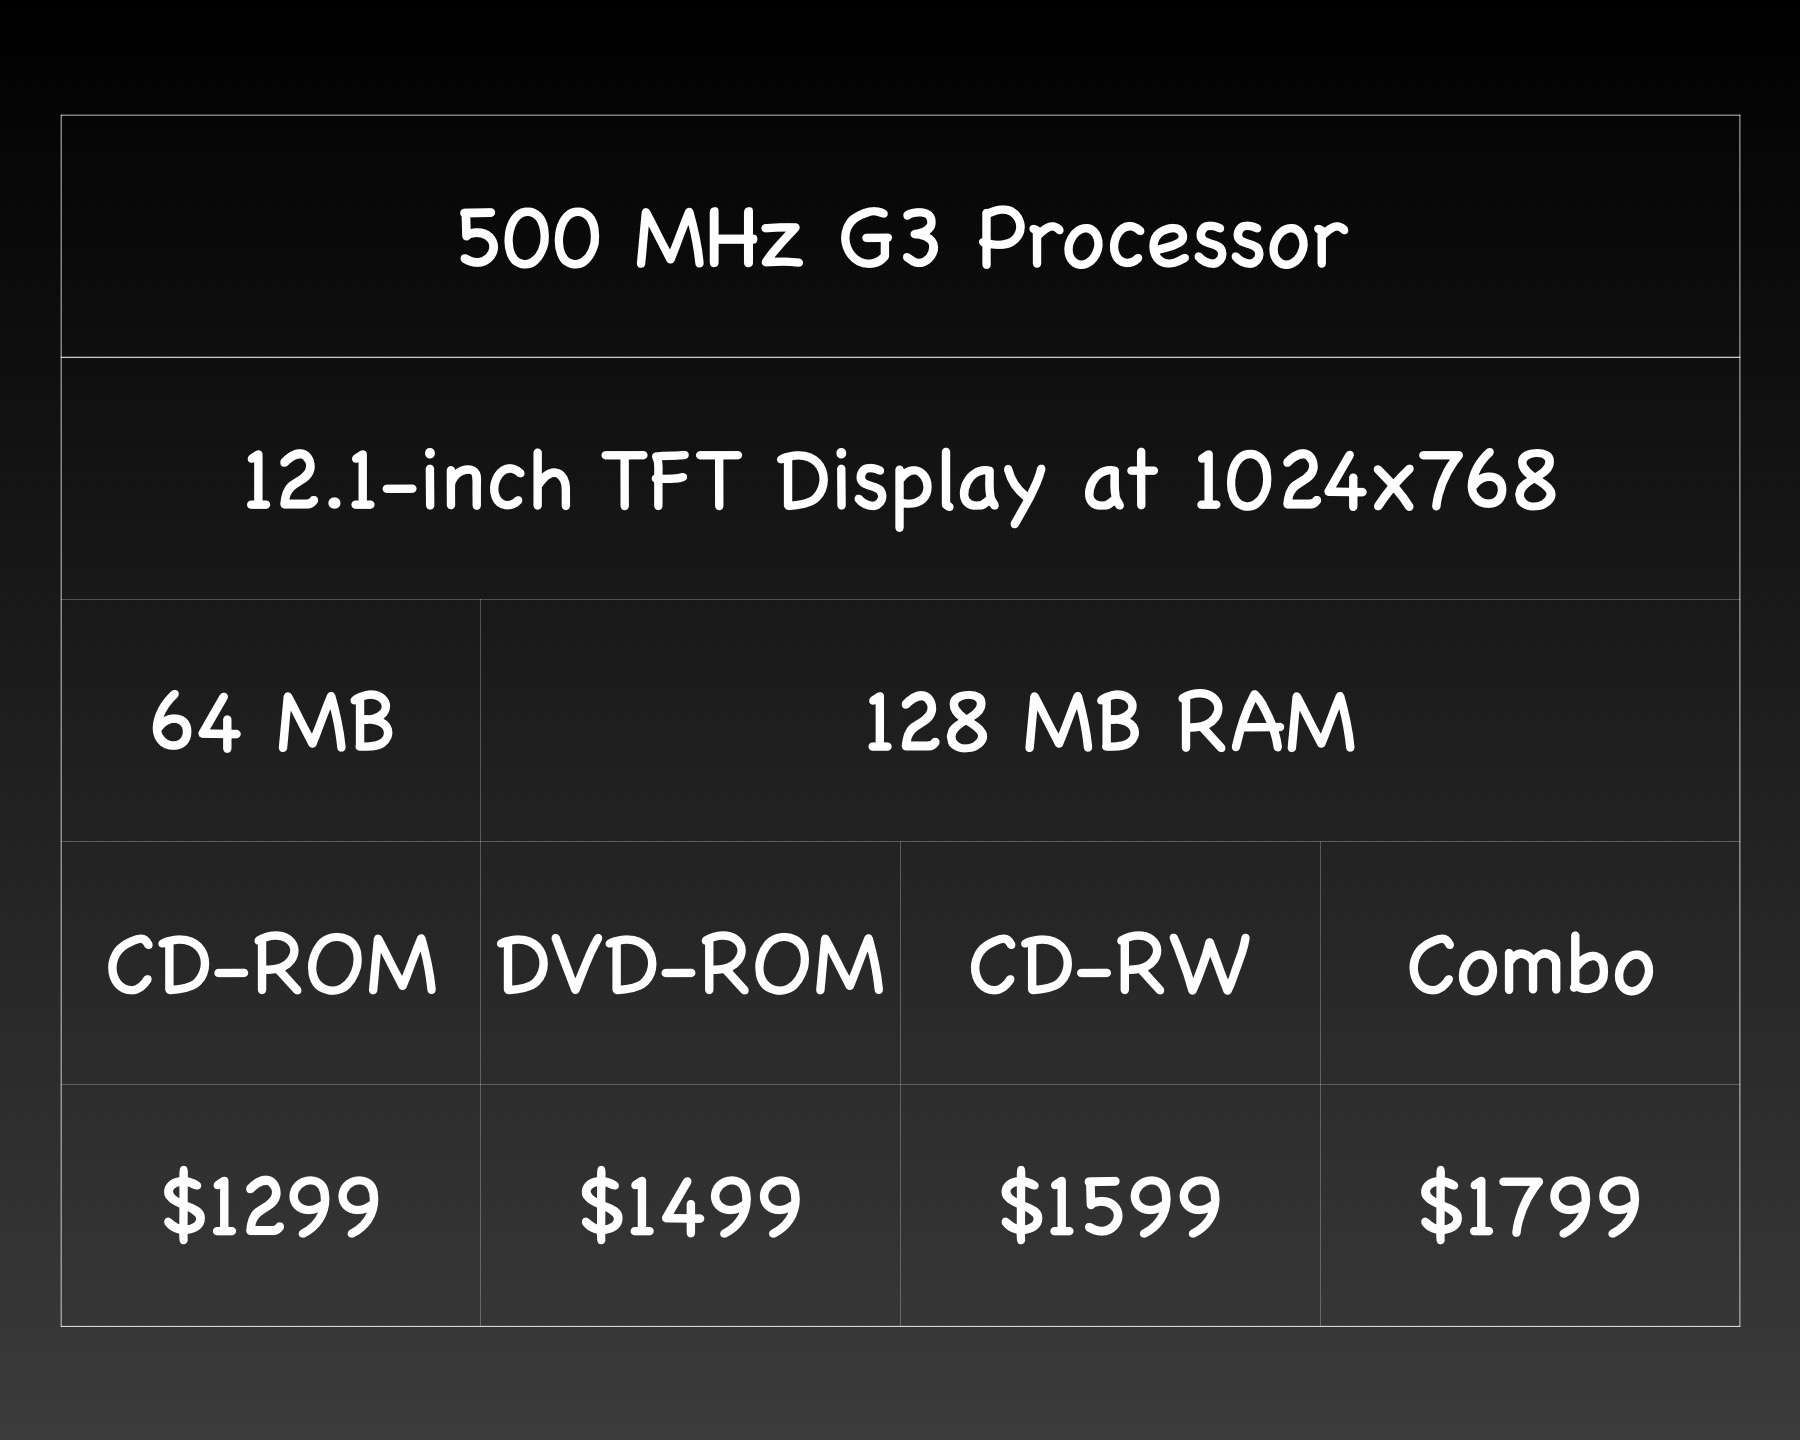 iBook G3 prices